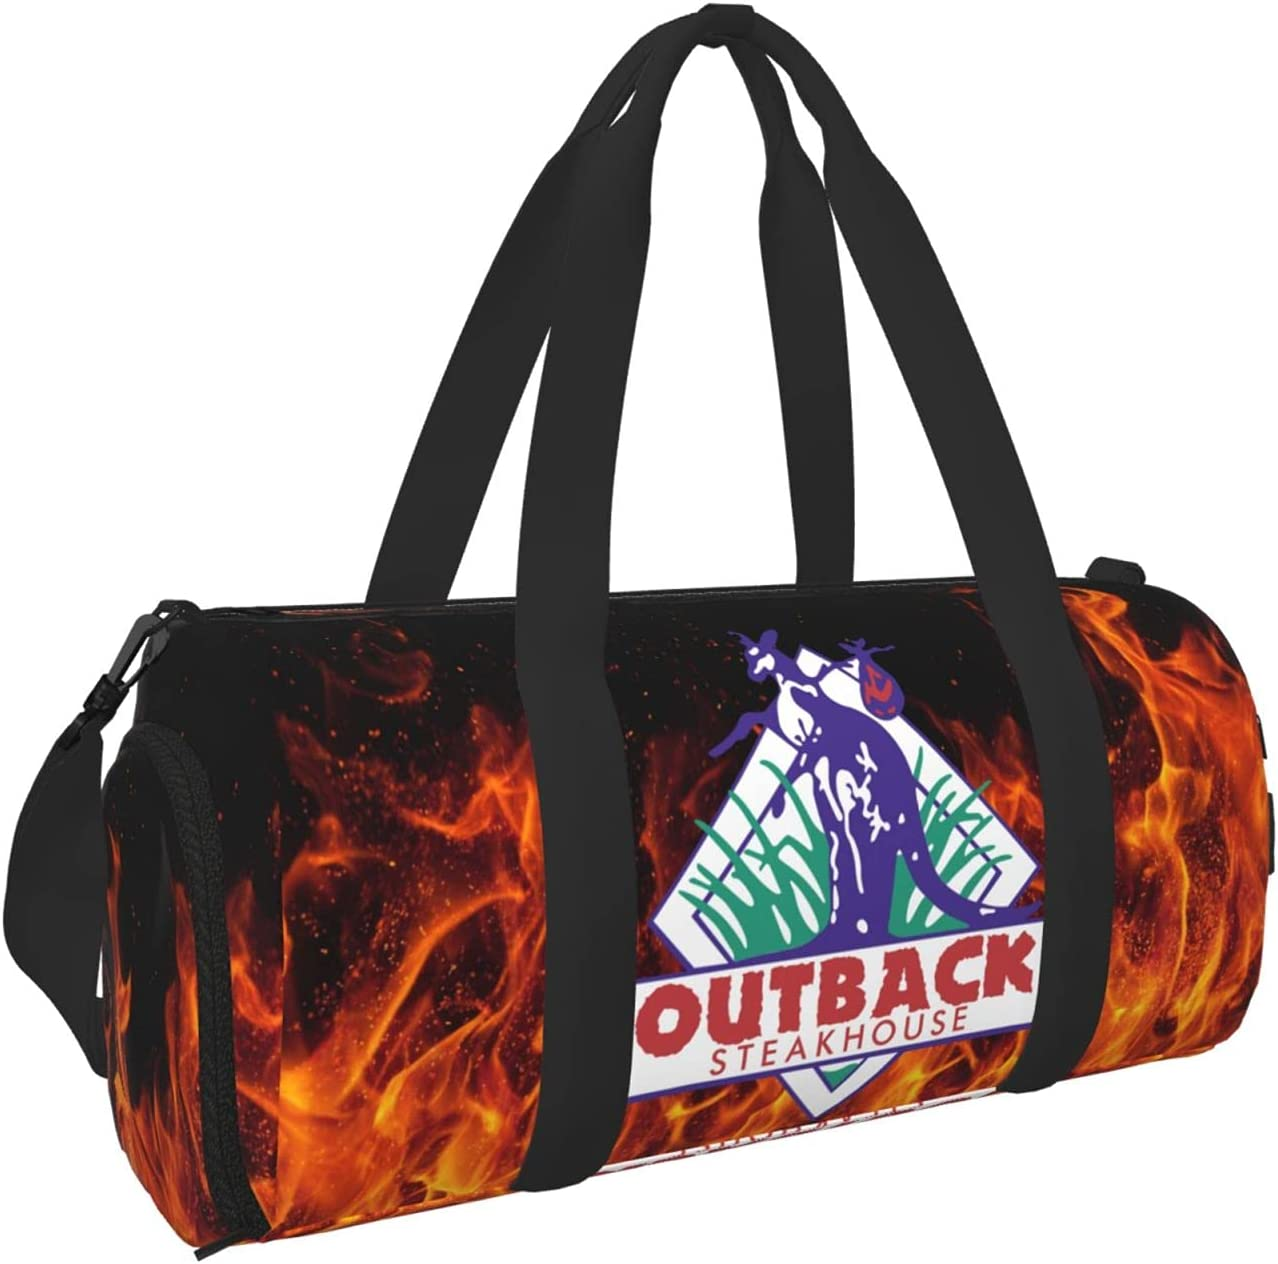 Outback Steakhouse Duffel Discount mail order Bag Sport Tot Bags Max 90% OFF Backpack Travel Gym